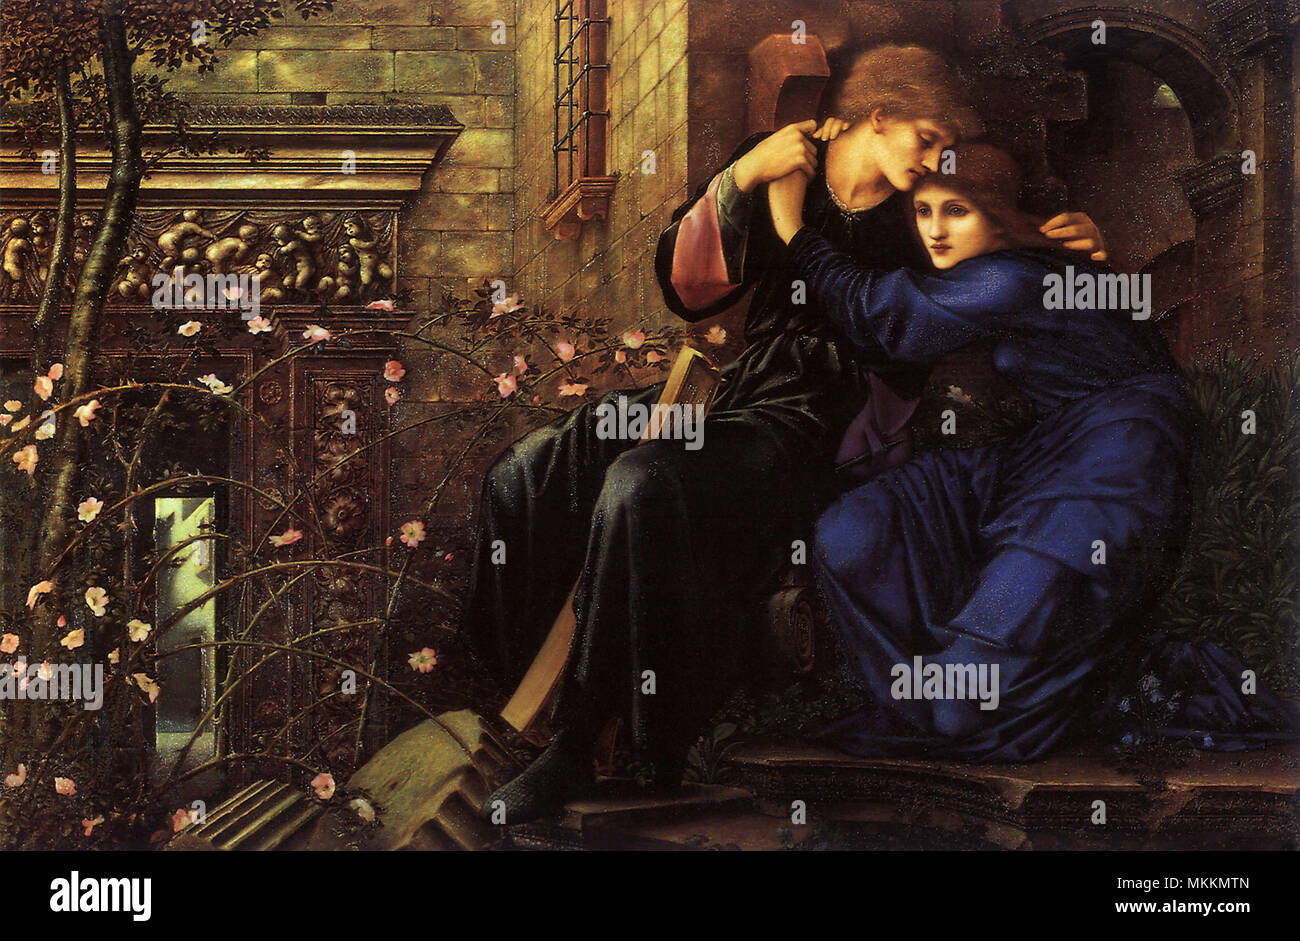 Love Among the Ruins - Stock Image